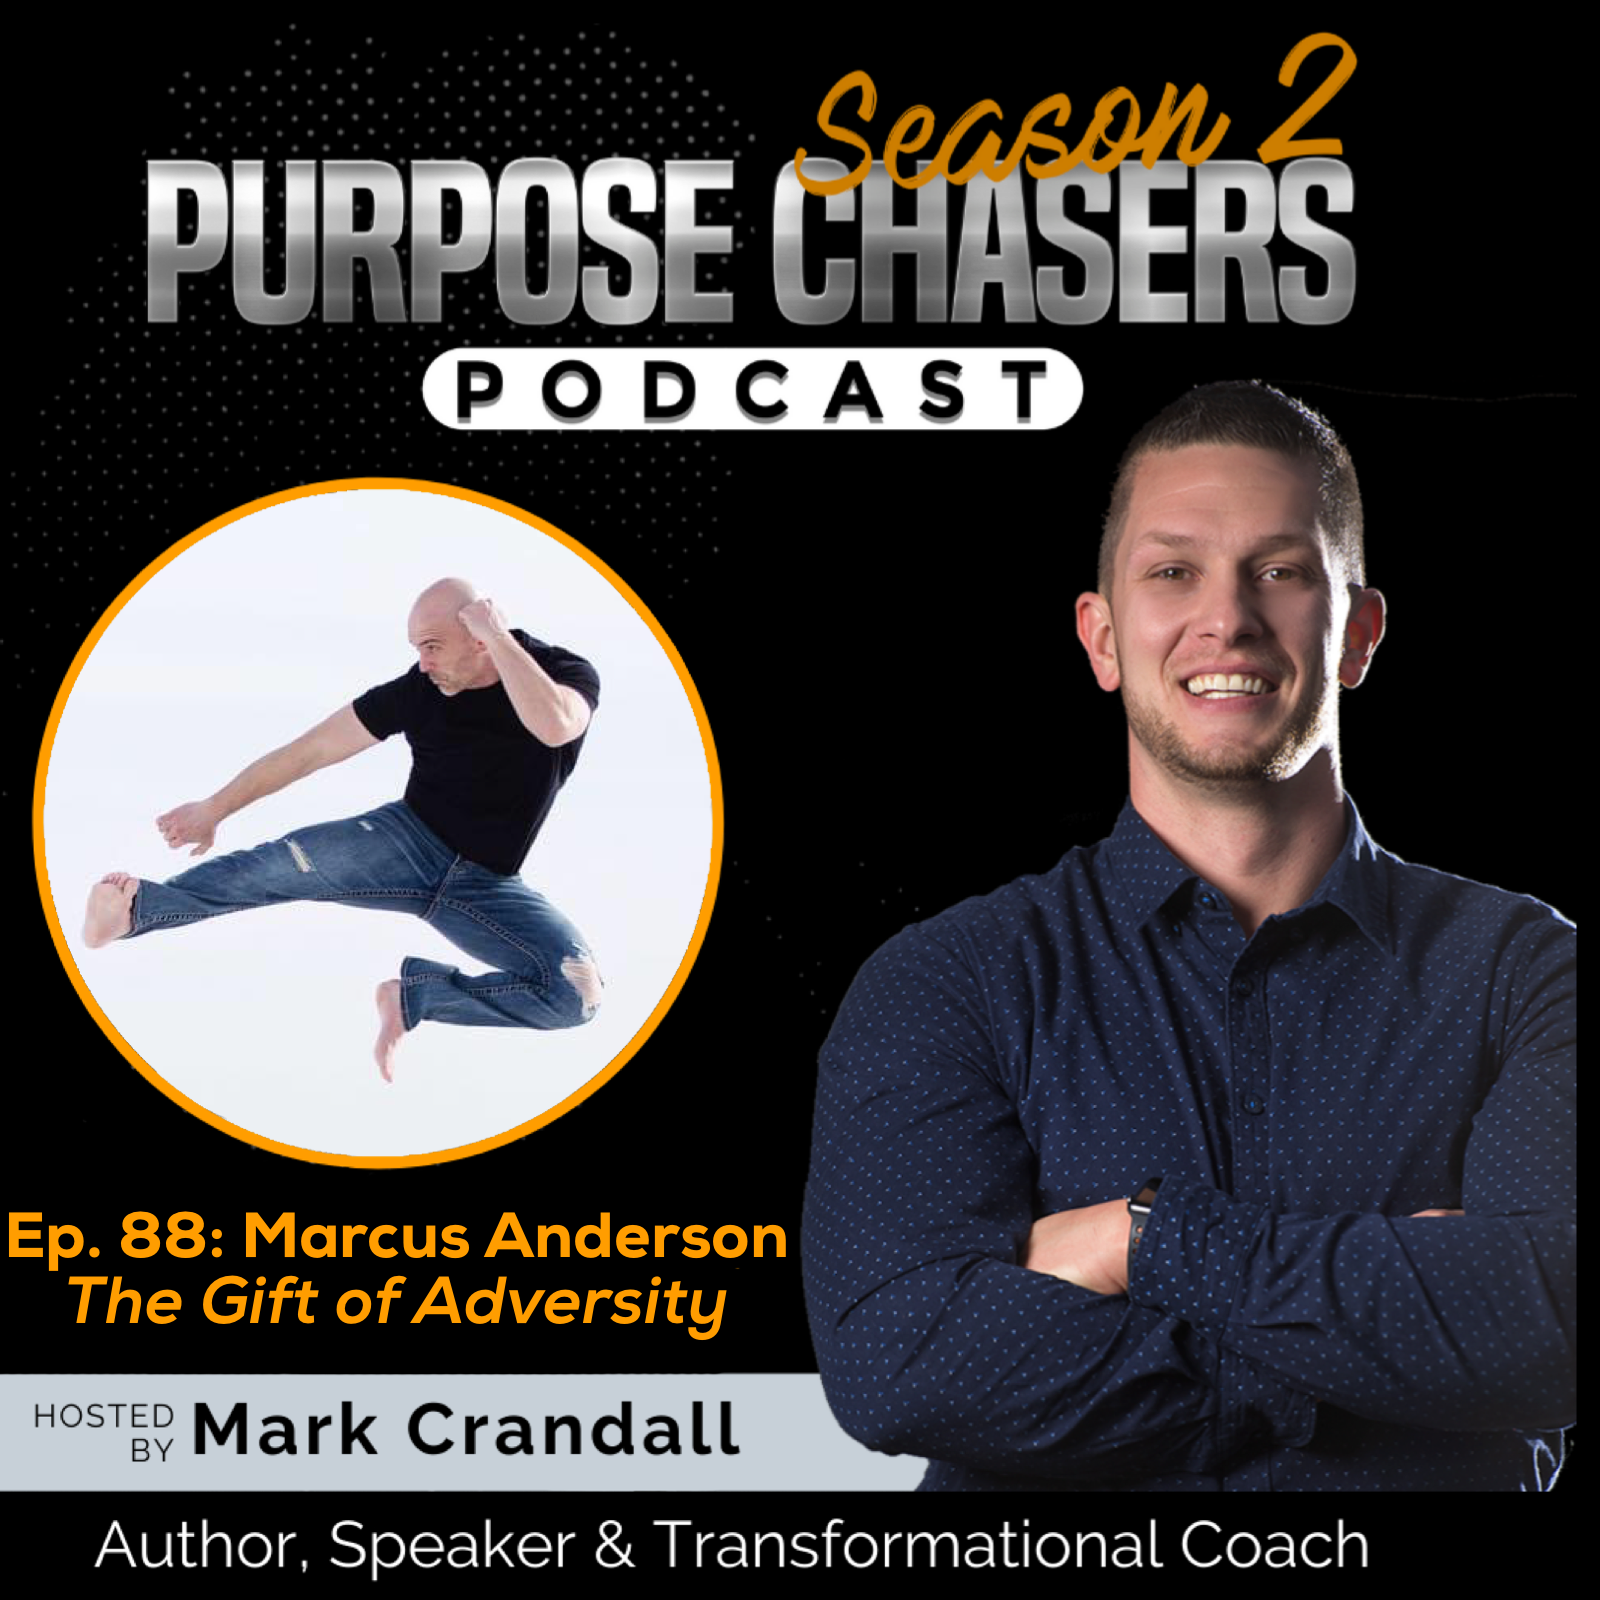 Ep. 88: Marcus Anderson - The Gift of Adversity  show art